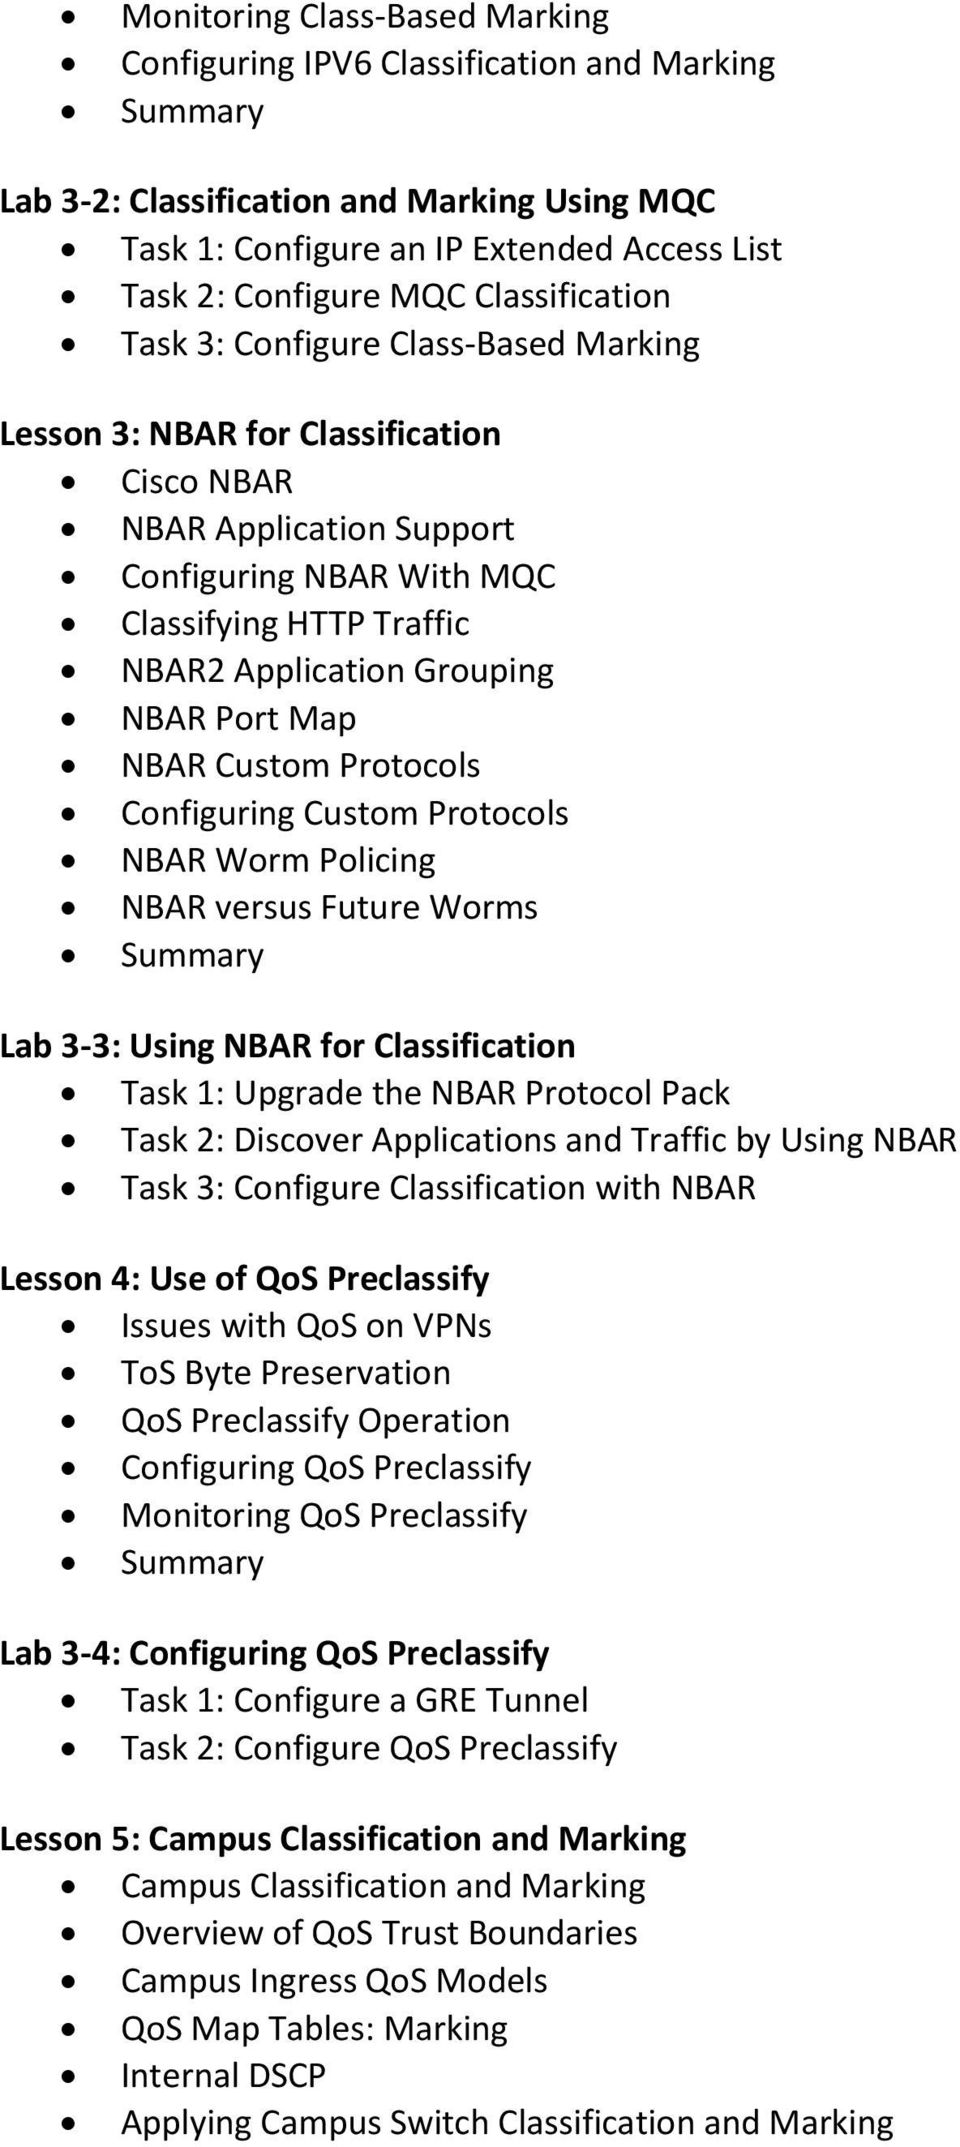 Grouping NBAR Port Map NBAR Custom Protocols Configuring Custom Protocols NBAR Worm Policing NBAR versus Future Worms Lab 3-3: Using NBAR for Classification Task 1: Upgrade the NBAR Protocol Pack